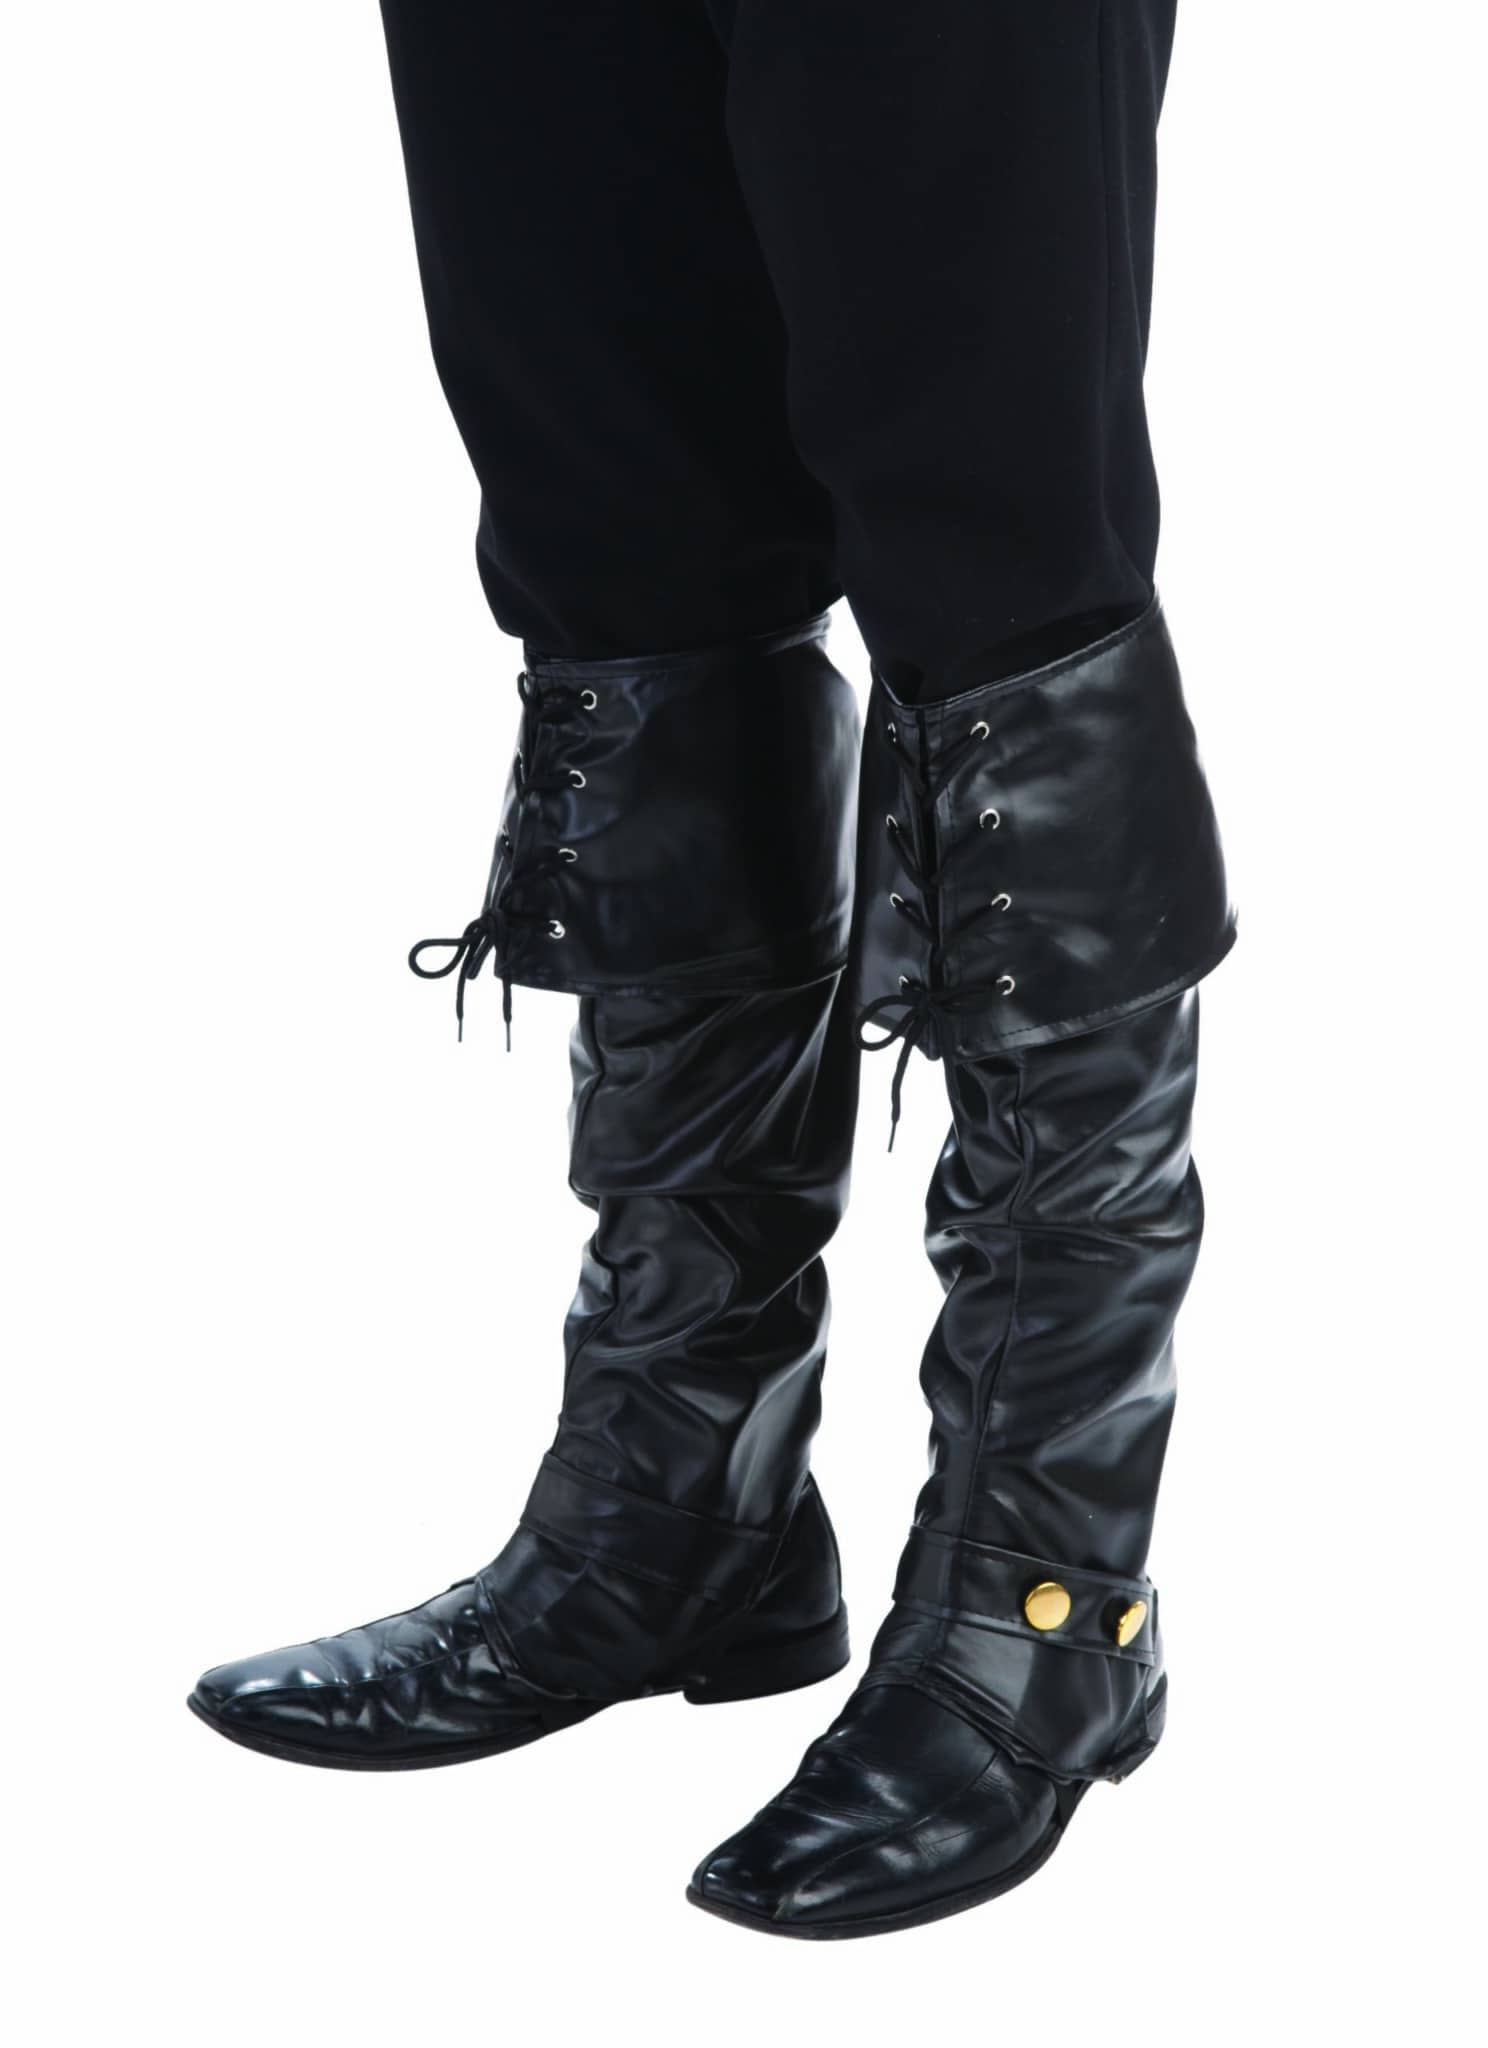 Deluxe Pirate Boot Covers 6